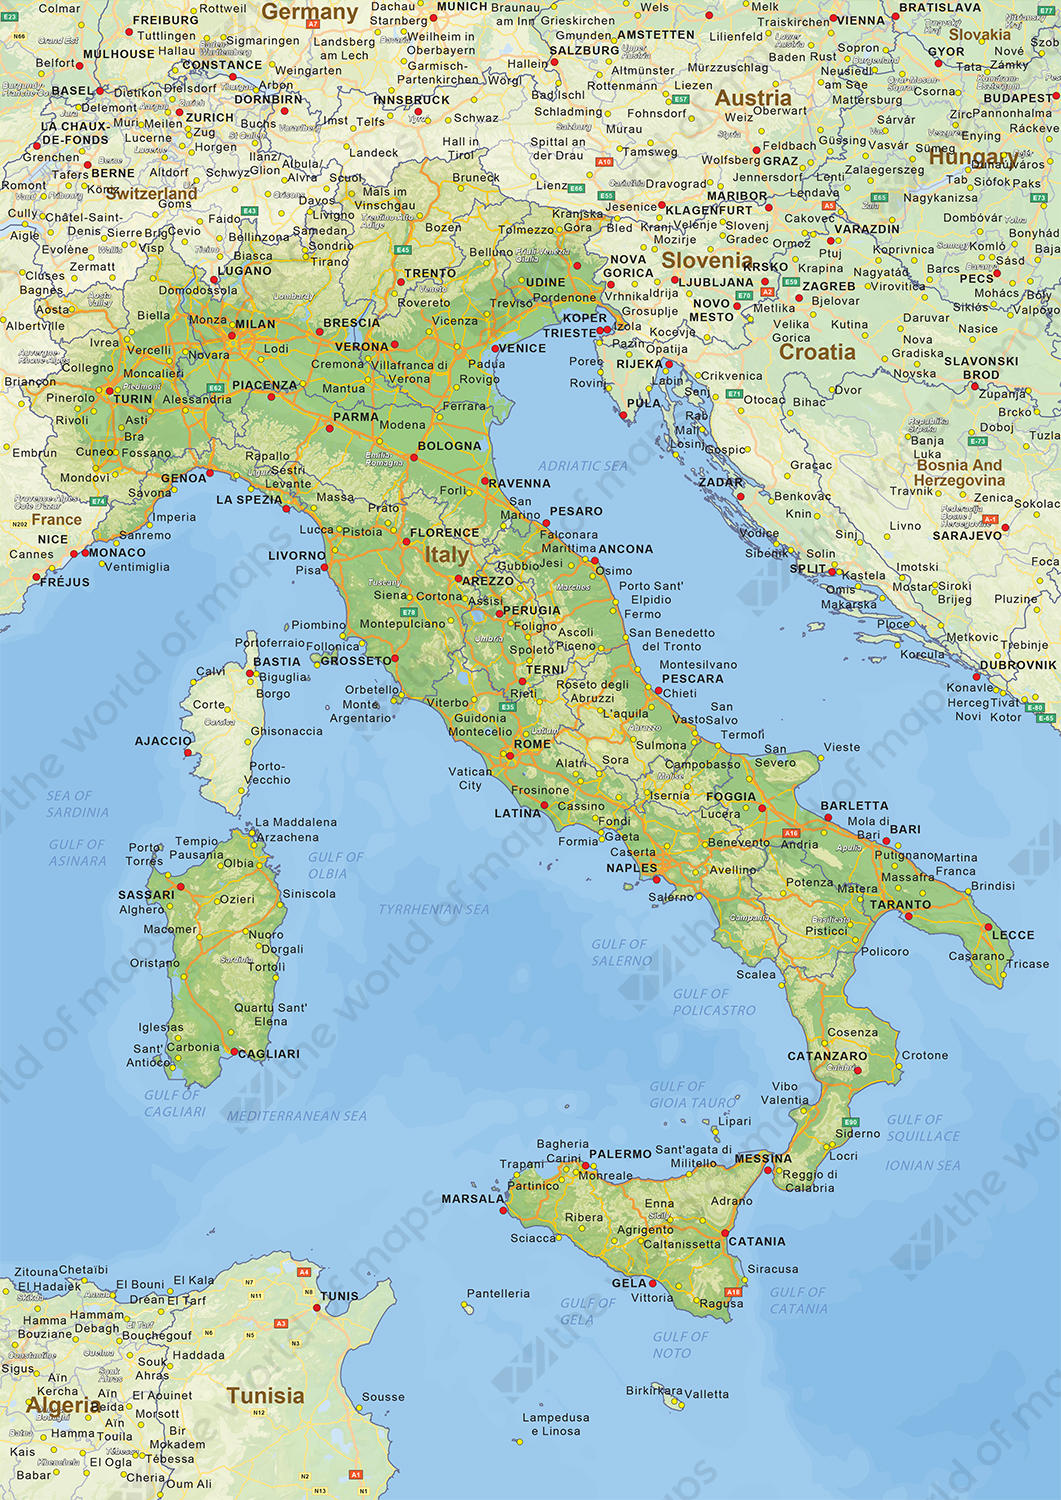 map of croatia, map of turkey, map of czech republic, turin italy, florence italy, map of amalfi coast, map of roman empire, map of slovenia, palermo italy, rome italy, map of venice, map of pompeii, map of southern europe, map of tunisia, bari italy, milan italy, italy flag, map of hungary, map of tuscany, modena italy, italy weather, map of malta, map of mediterranean, map of norway, map of cyprus, bologna italy, genova italy, venice italy, map of yemen, verona italy, italy travel, map of sweden, lake como italy, map of united states, naples italy, italy tourism, pisa italy, on map if italy